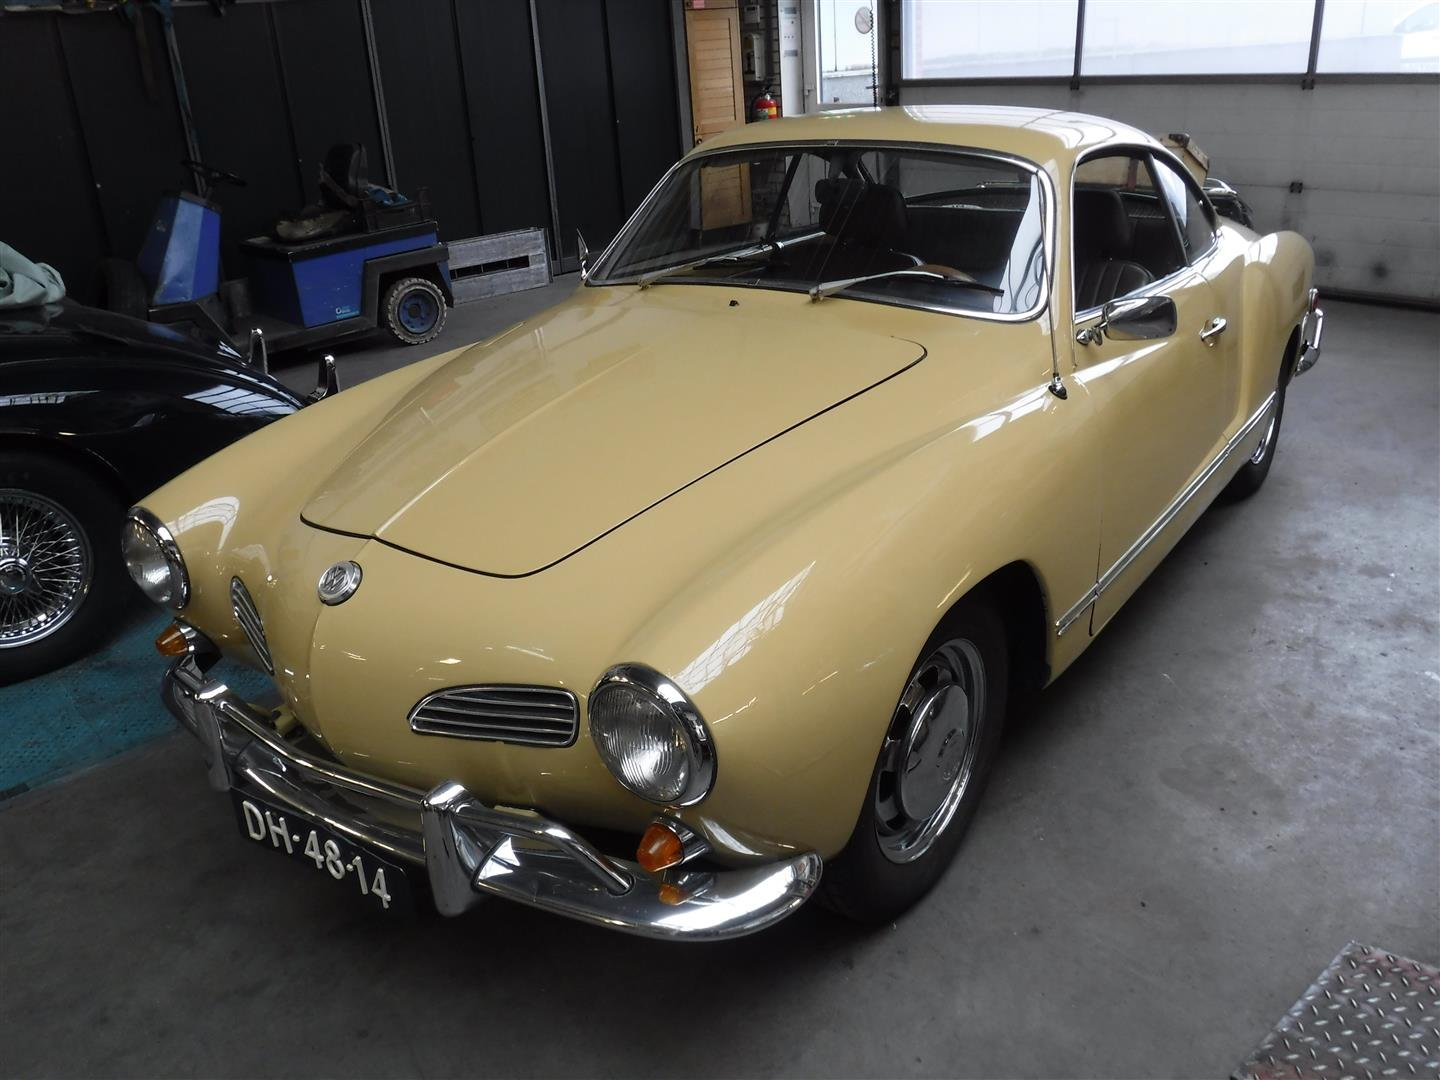 1969 VW Karmann Ghia coupé '69 For Sale (picture 1 of 6)